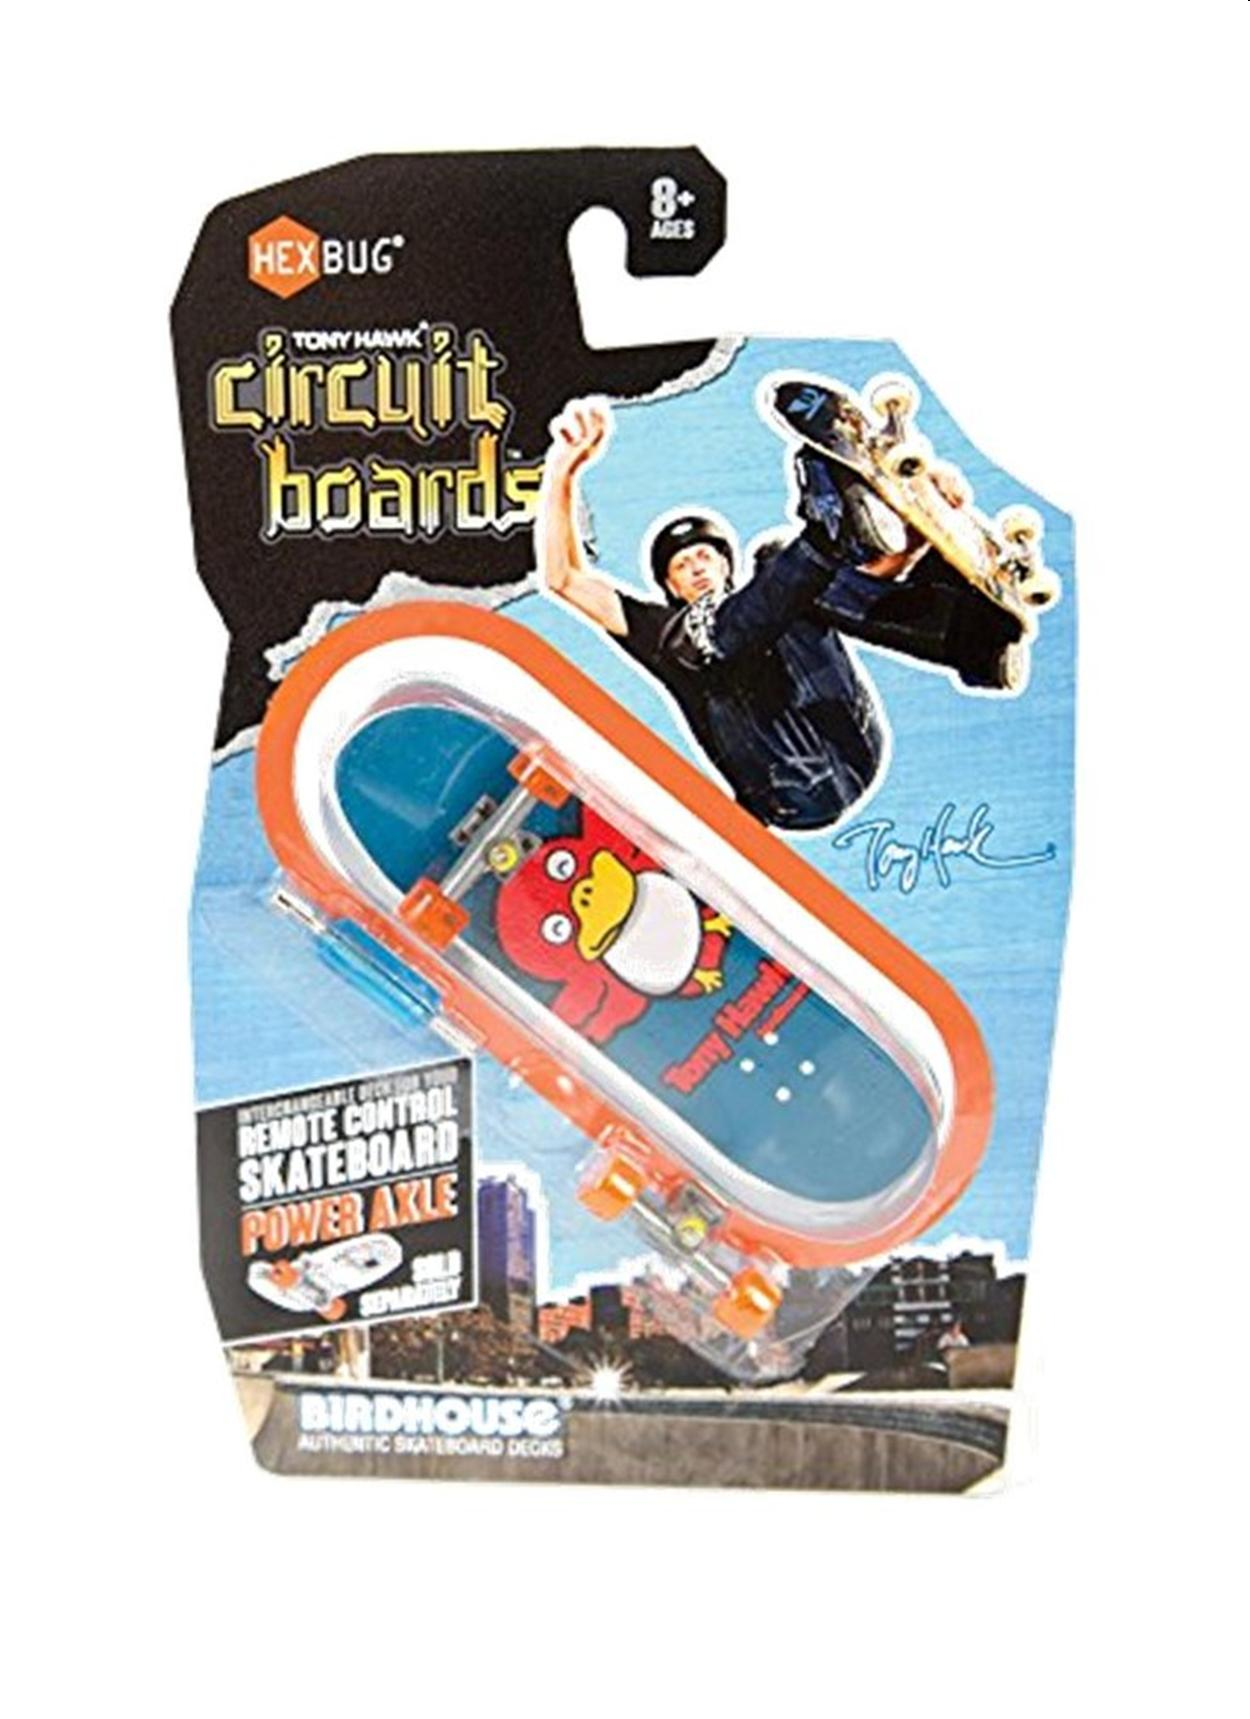 Hexbug Tony Hawk Circuit Board Guide And Troubleshooting Of Wiring Buy Boards Remote Control Skateboard Ramp Assorted Single Fingerboard By